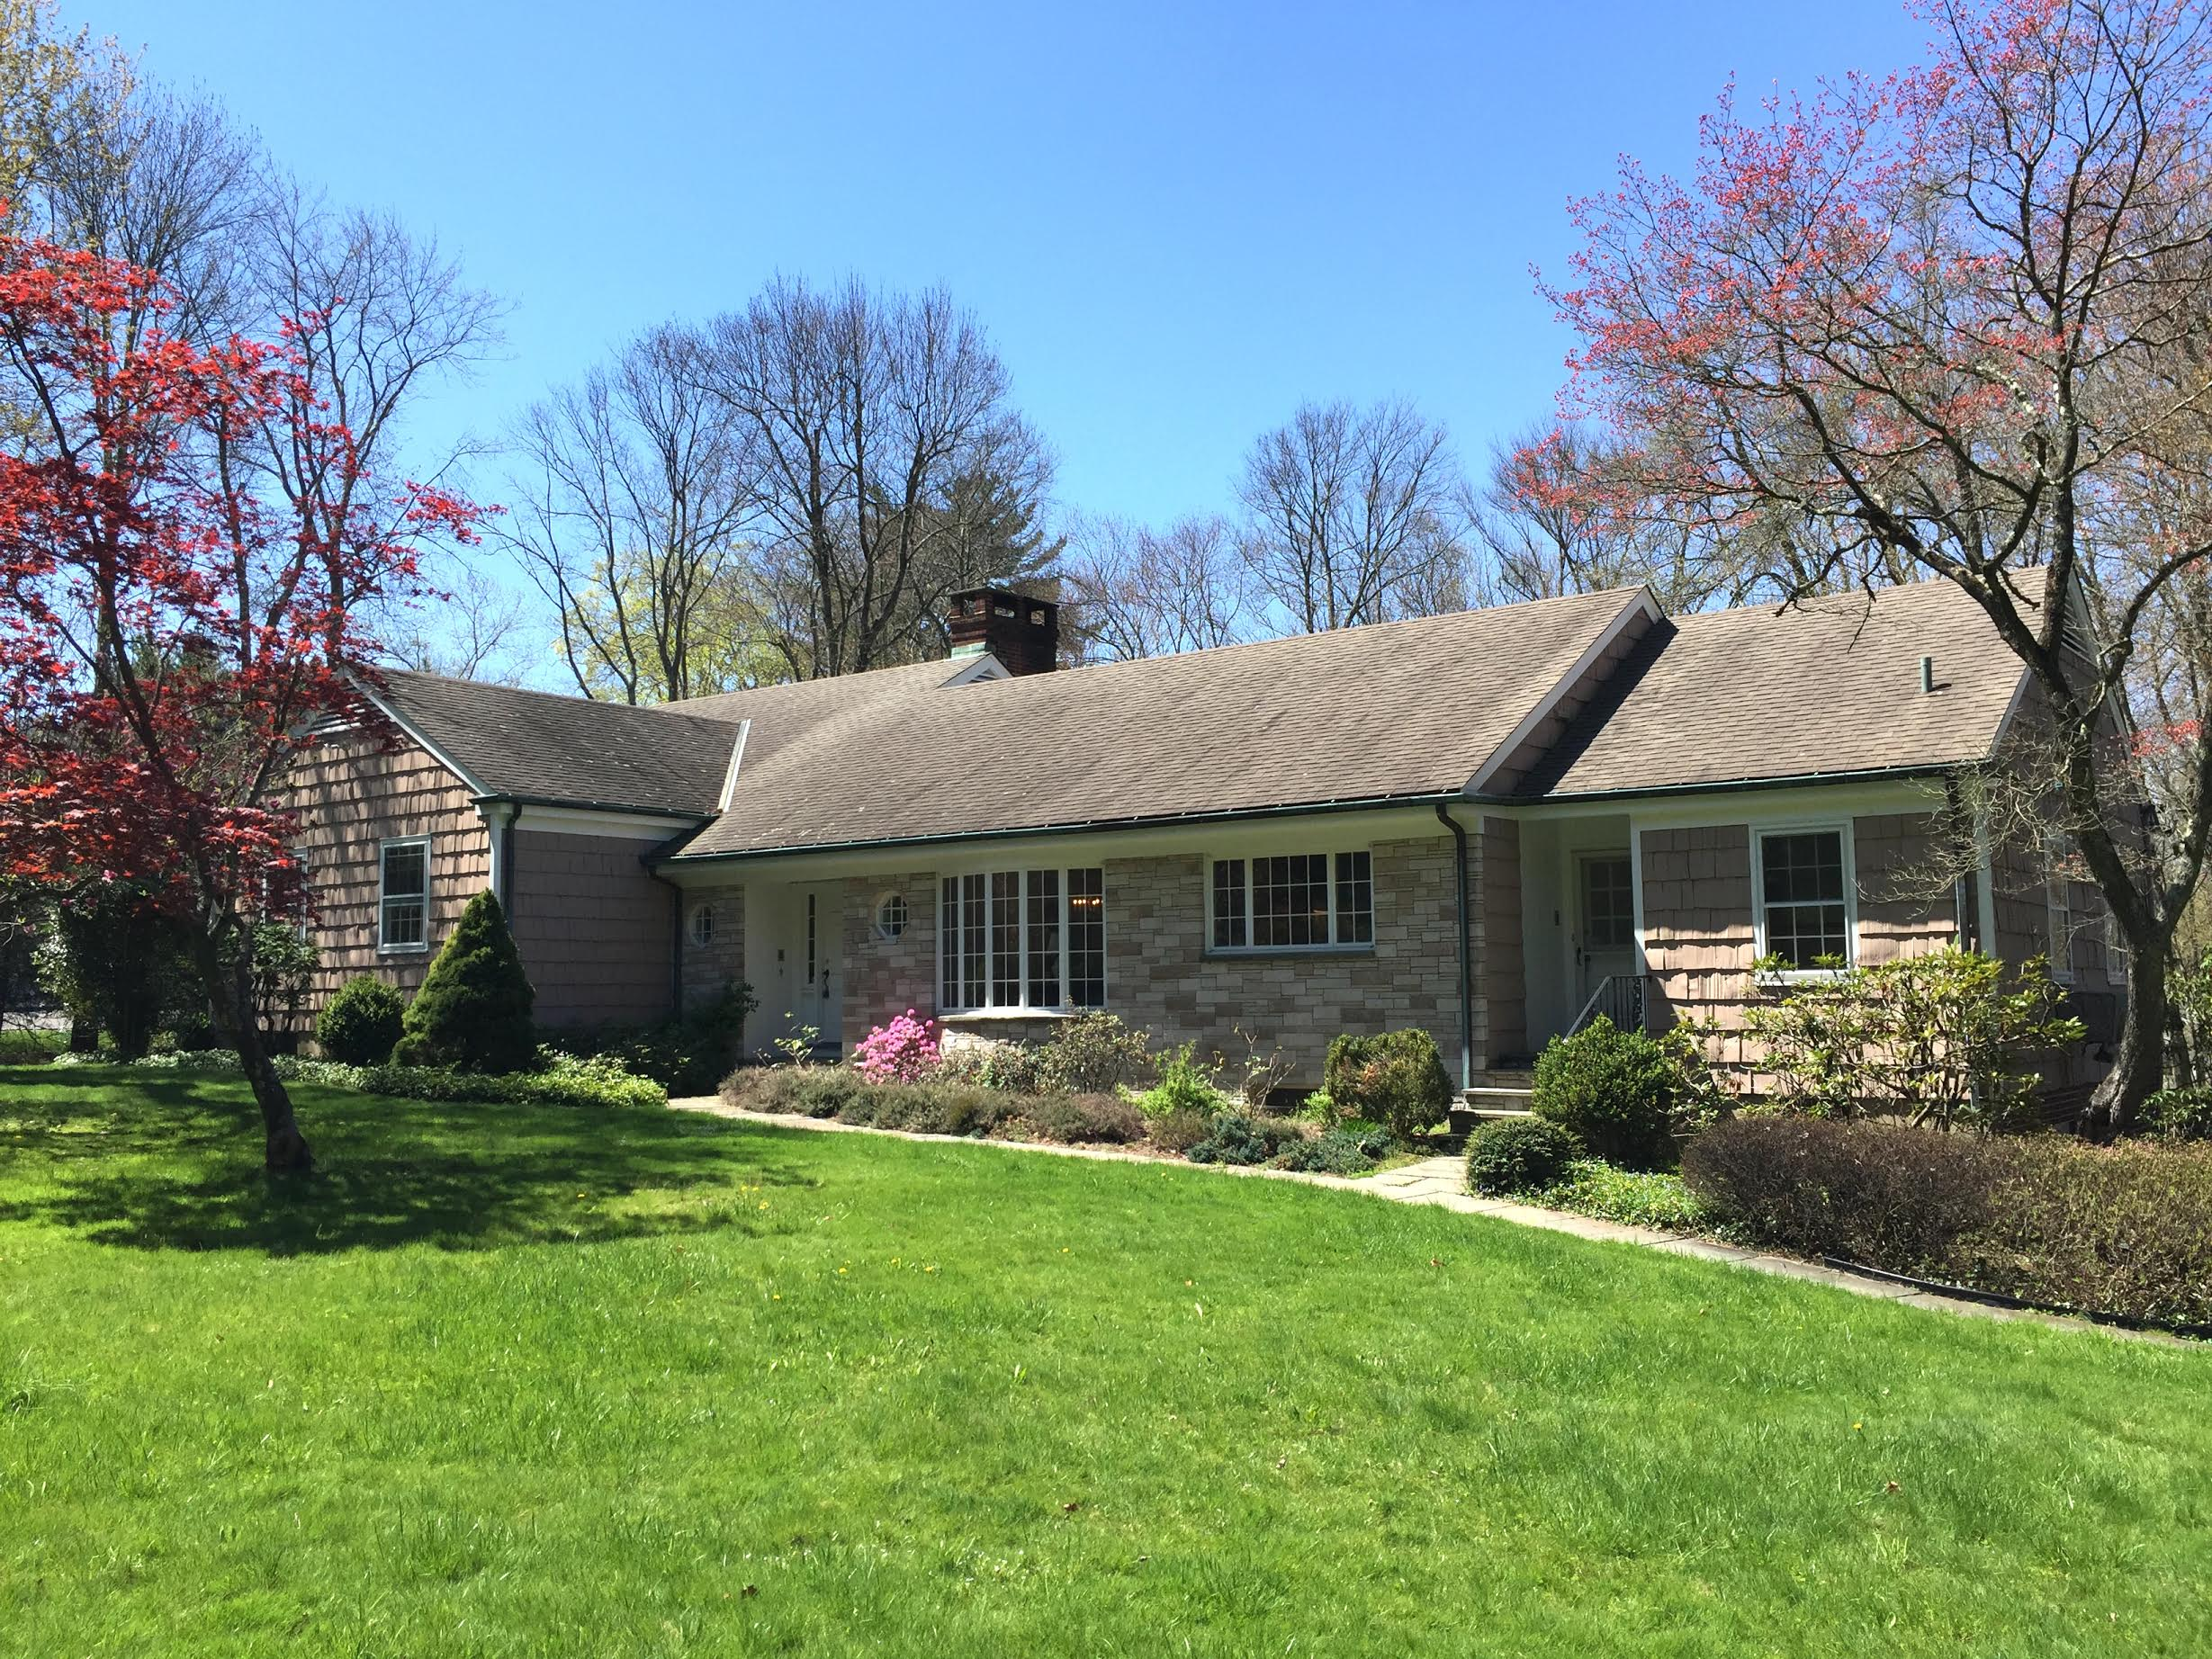 Single Family Home for Sale at Rare Opportunity 397 Middlesex Road Darien, Connecticut, 06820 United States